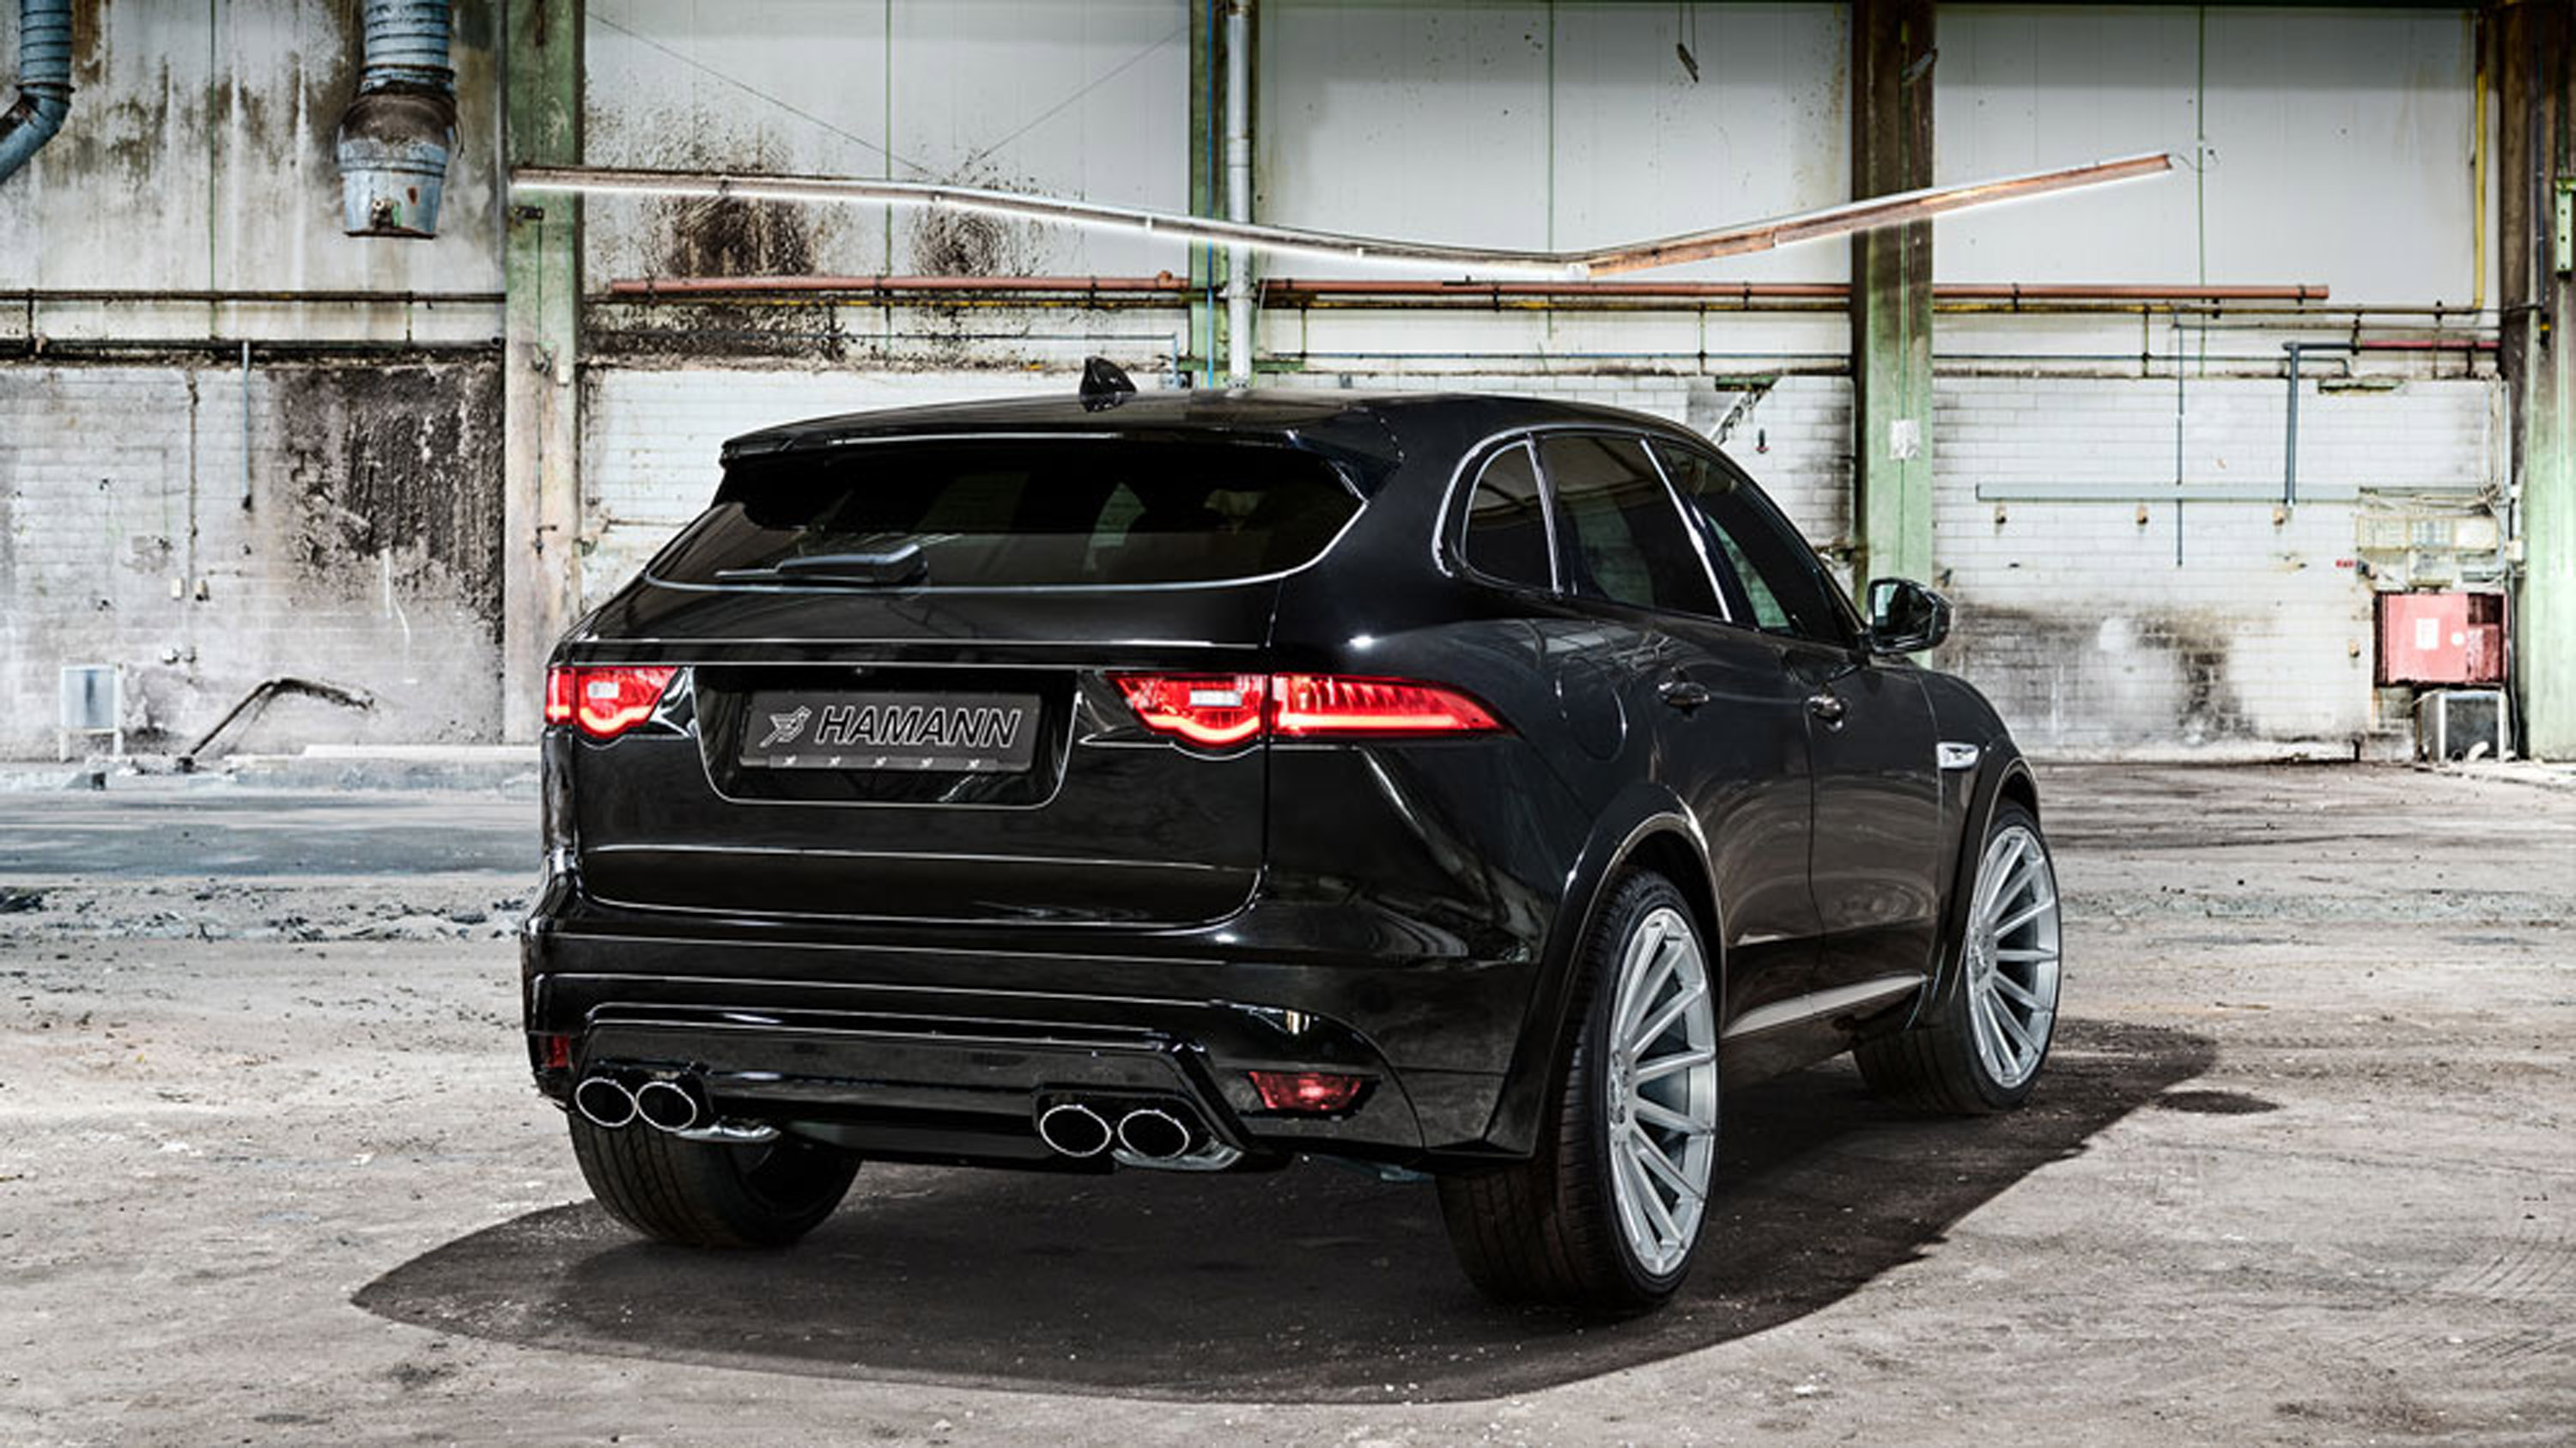 ownership caradvice loading f jaguar dsc review suv new images photos pace